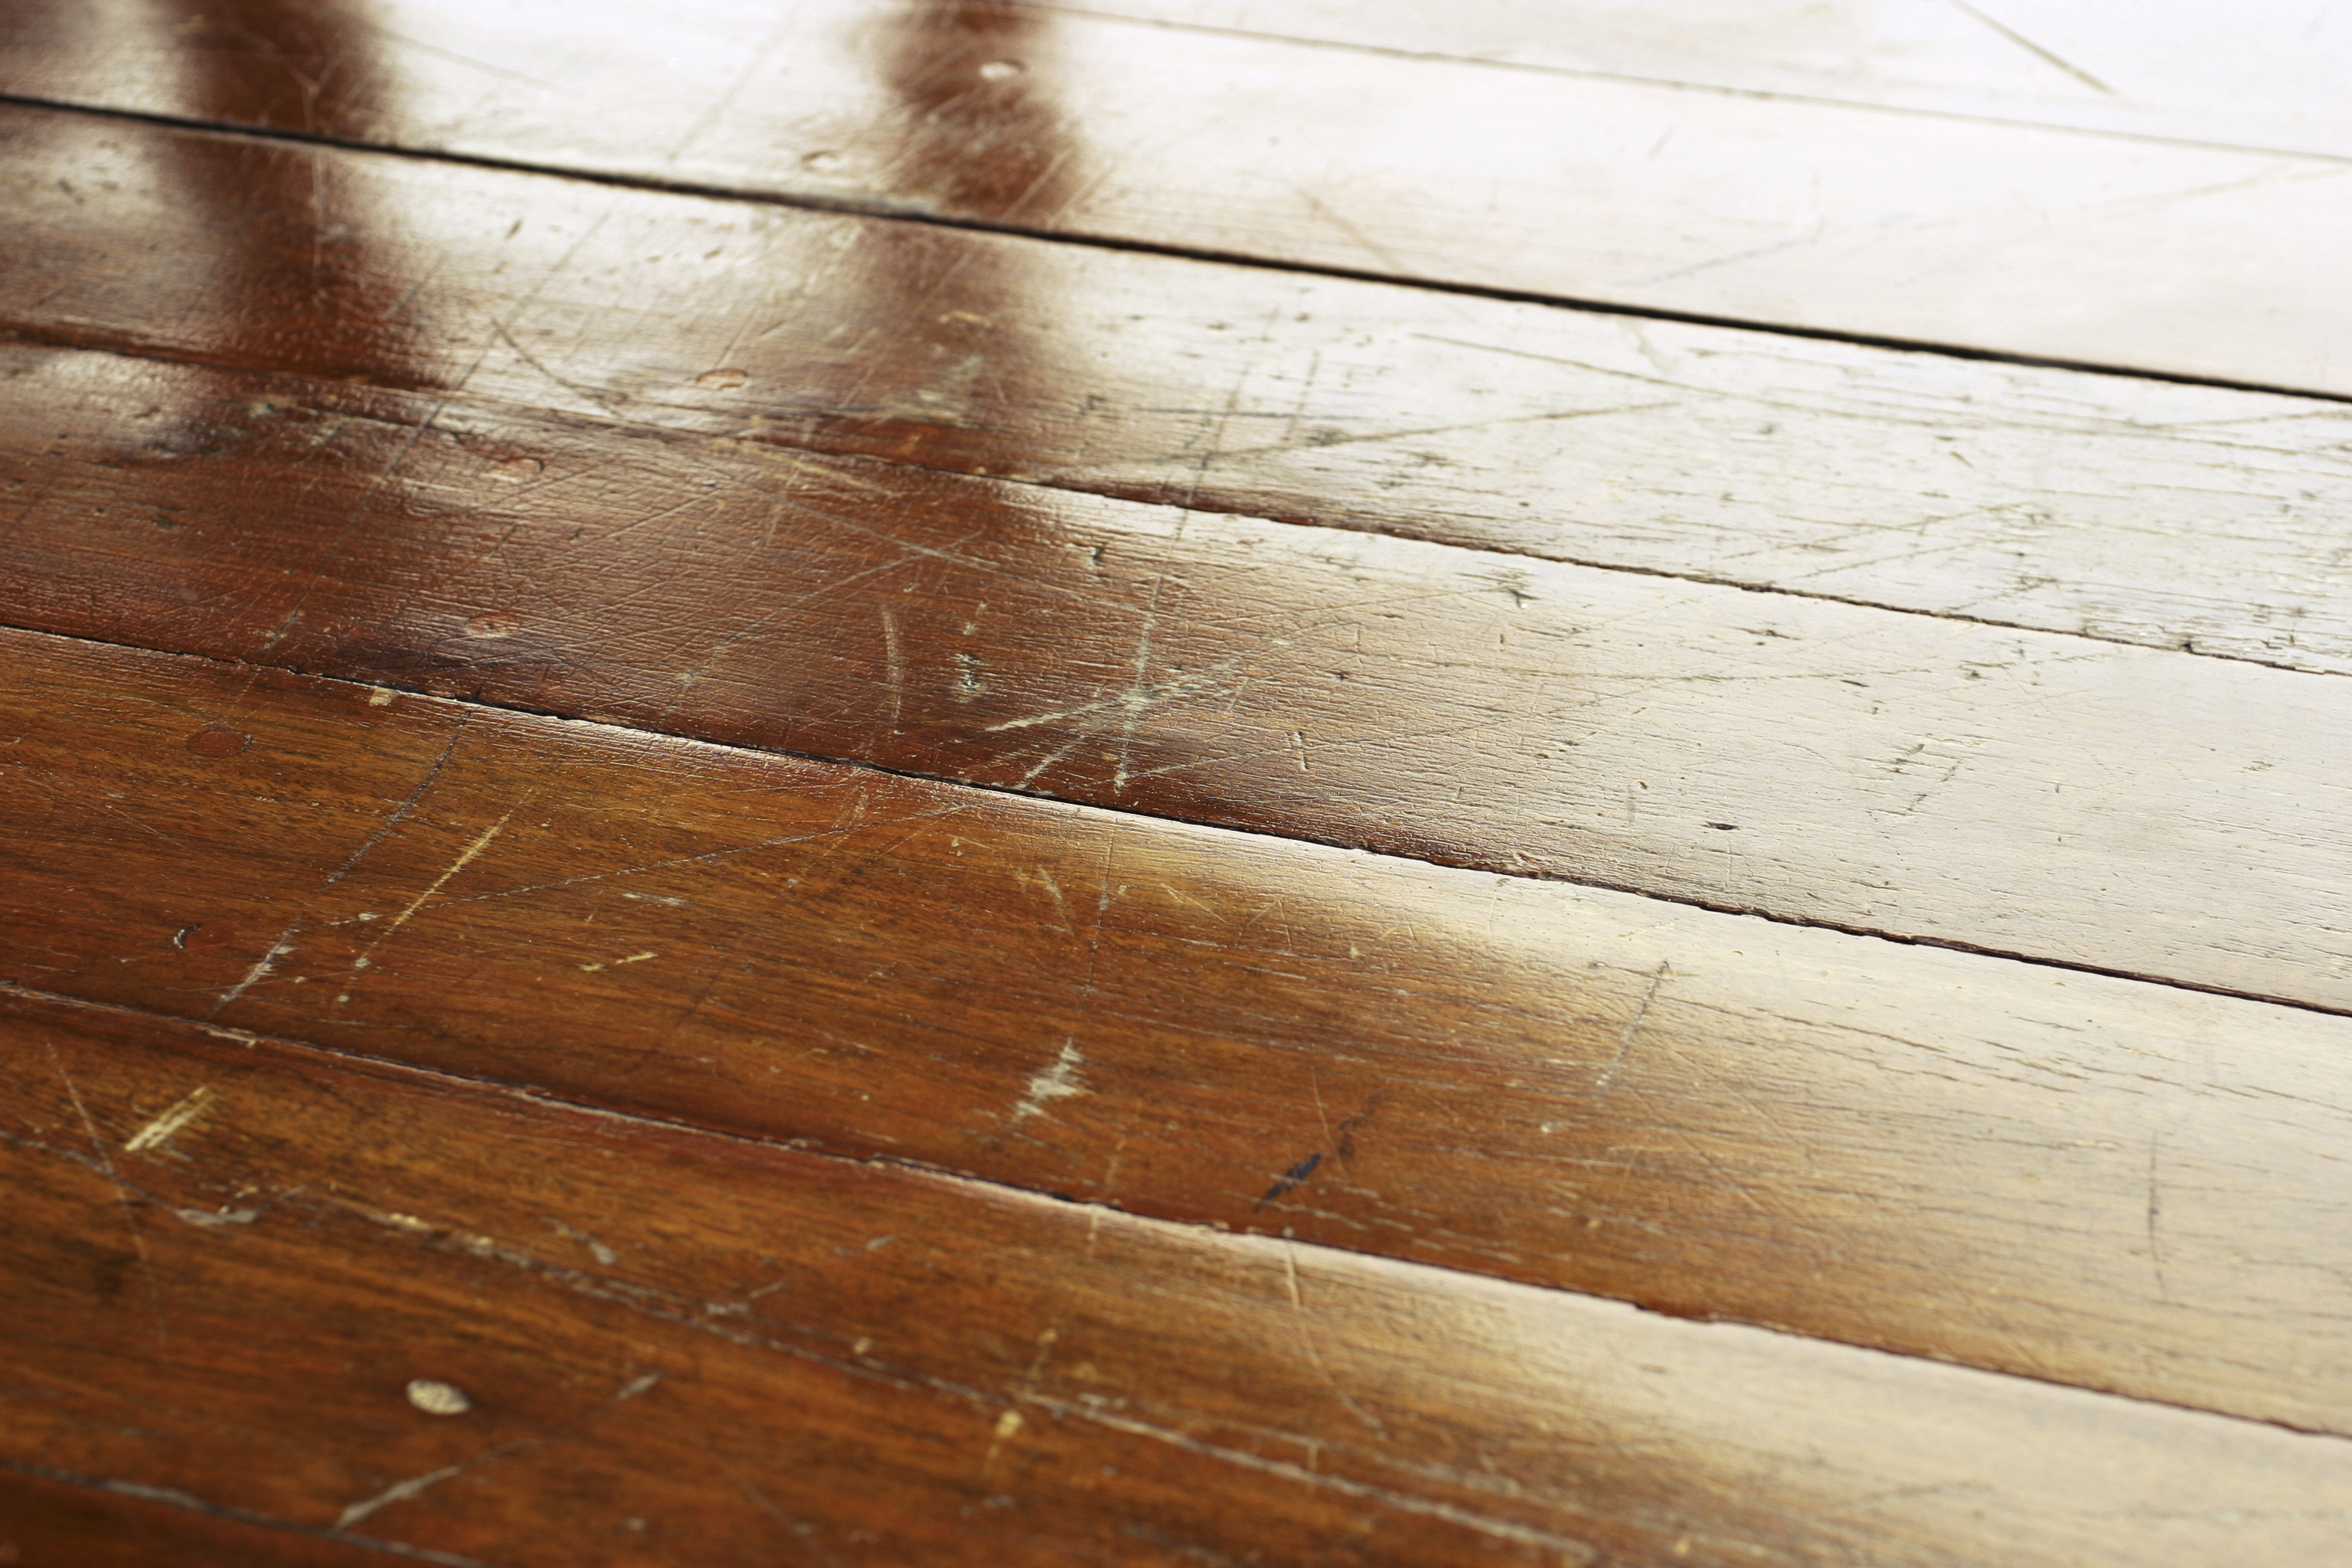 hardwood floor store mn of how to remove nail polish from hardwood floors hardwood floor inside how to remove nail polish from hardwood floors hardwood floor cleaning how to mop hardwood floors